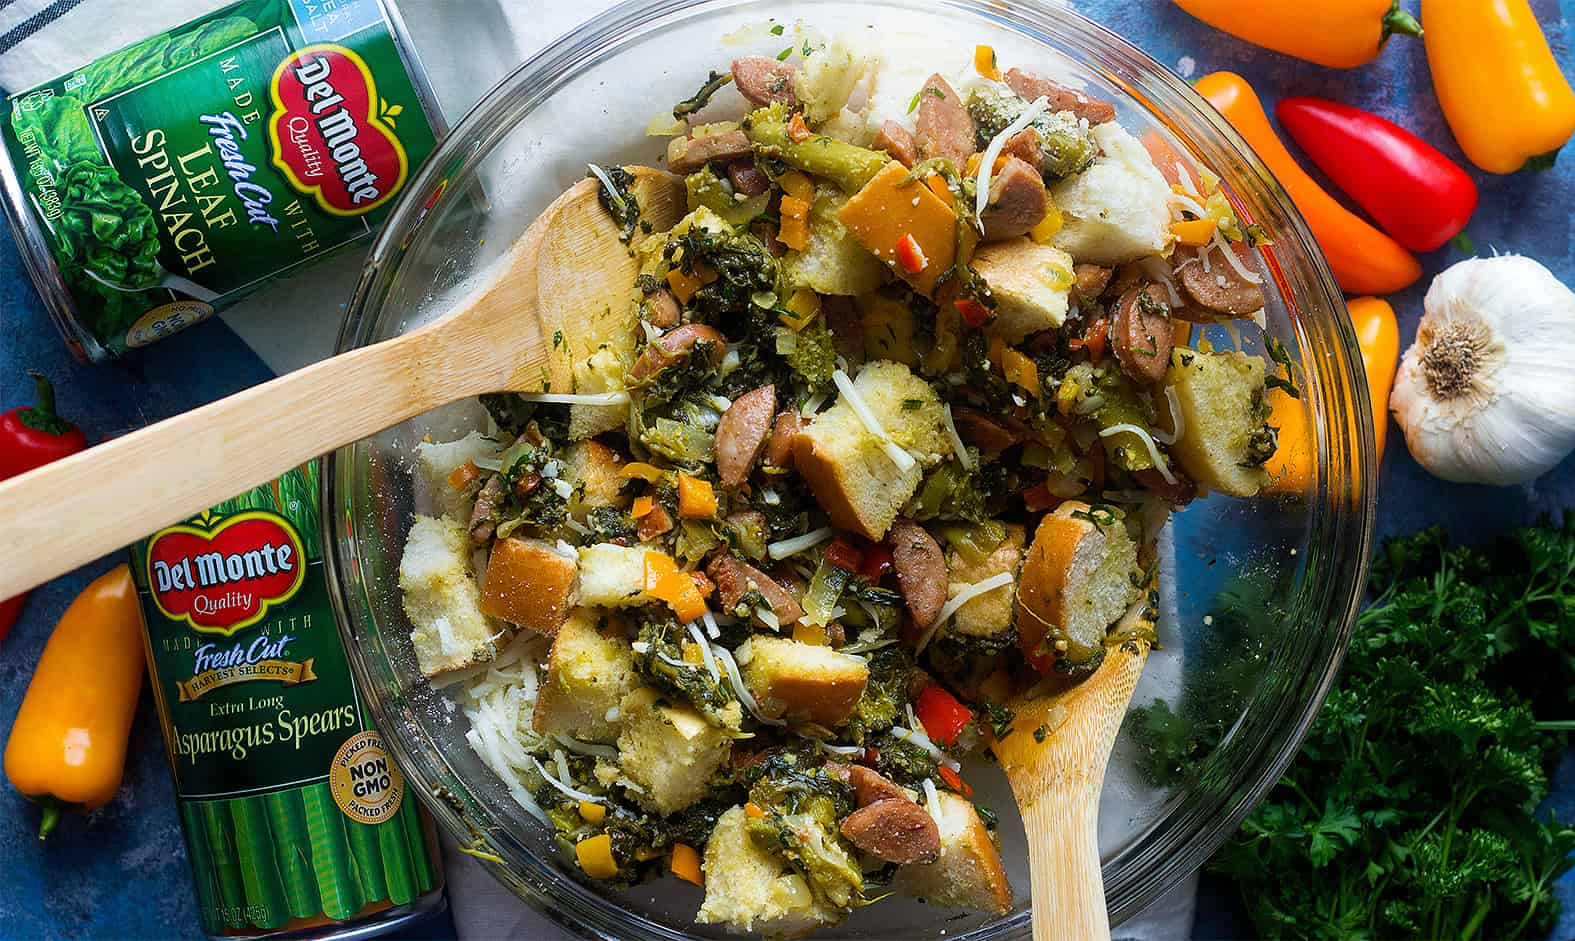 Mix bread cubes with vegetables in a large bowl to make bread pudding with sausage.